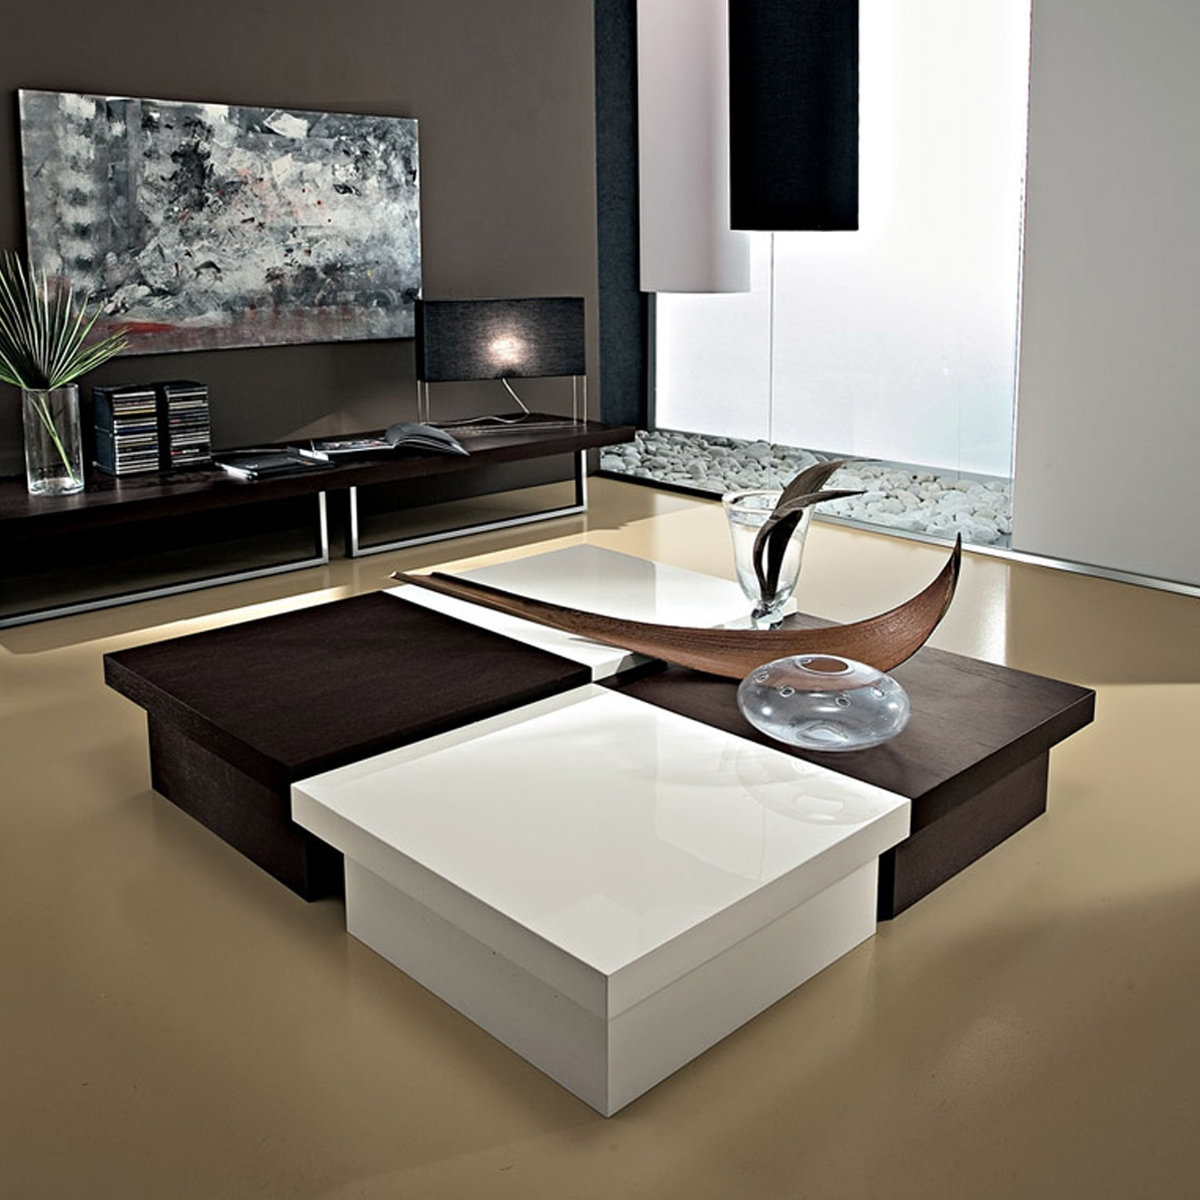 Grande table basse design lolah for Grande table basse rectangulaire